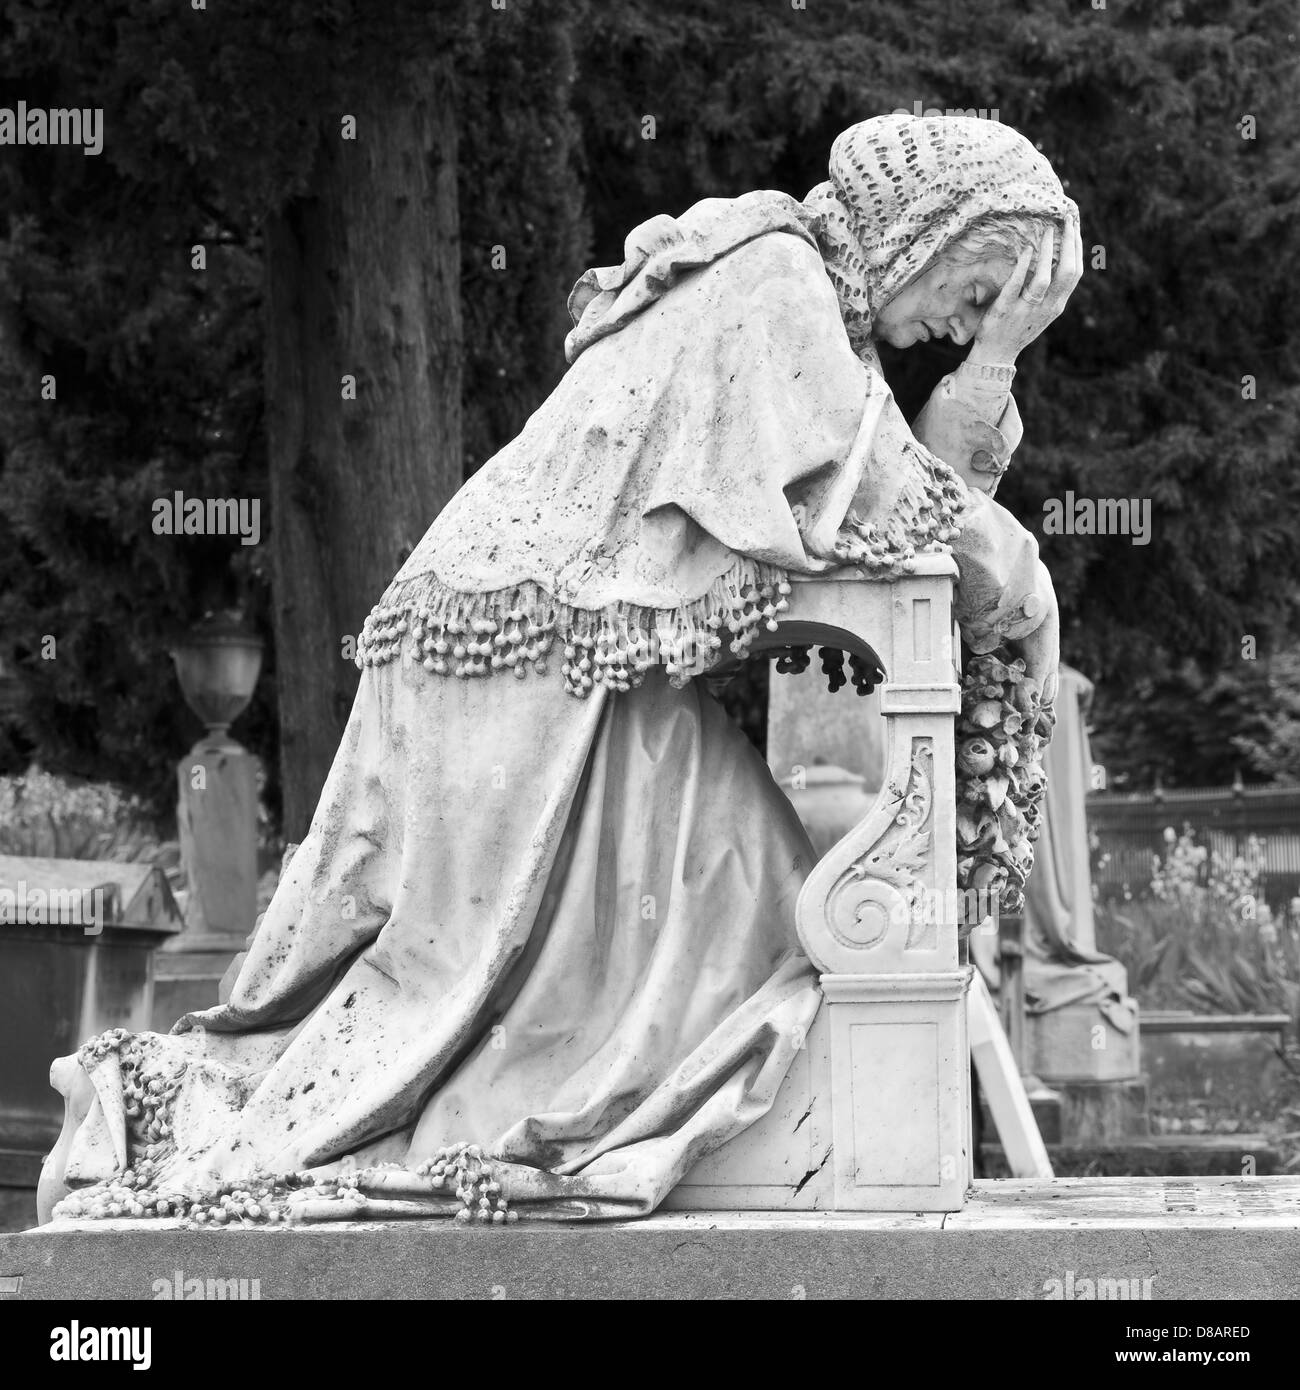 The English Cemetery, Florence, Italy. Grave of Arnold Savage Landor with a statue of his grieving mother - Stock Image